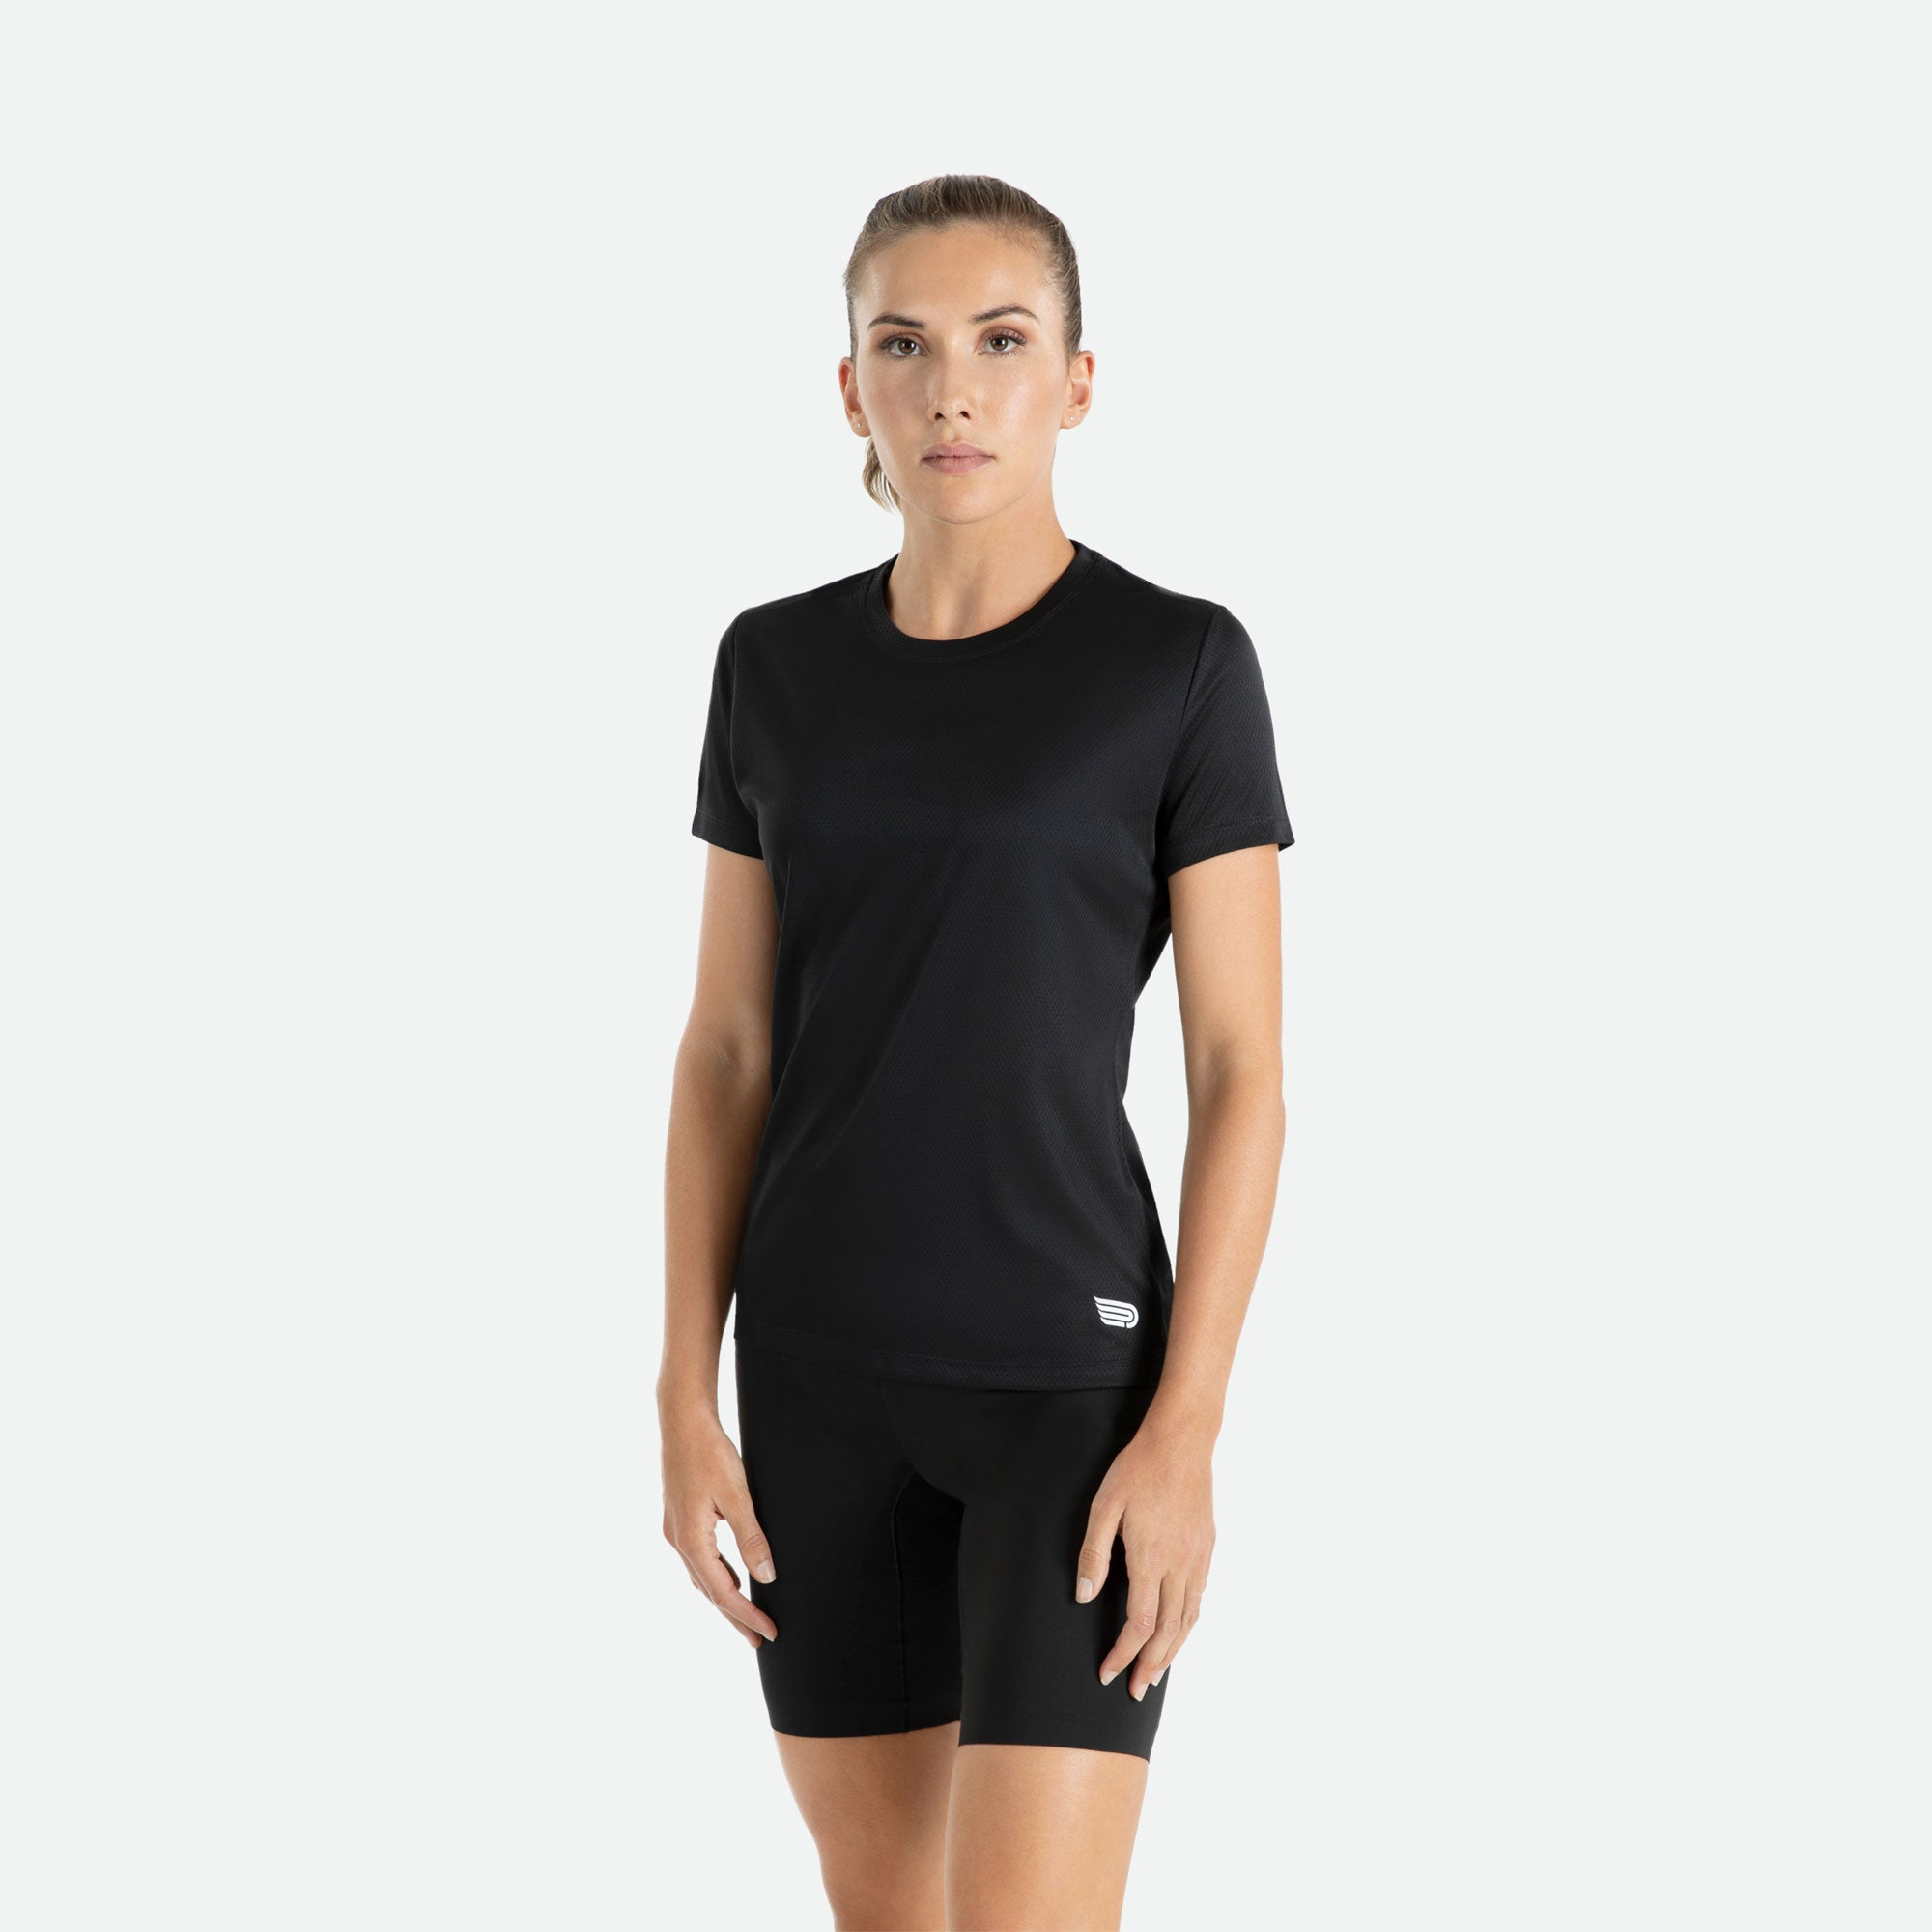 Our Pressio women's black Hāpai short sleeve t-shirt features EcoTECH MF fabric which has dual filament recycled polyester yarns from Unifi for superior moisture control to keep you dry.